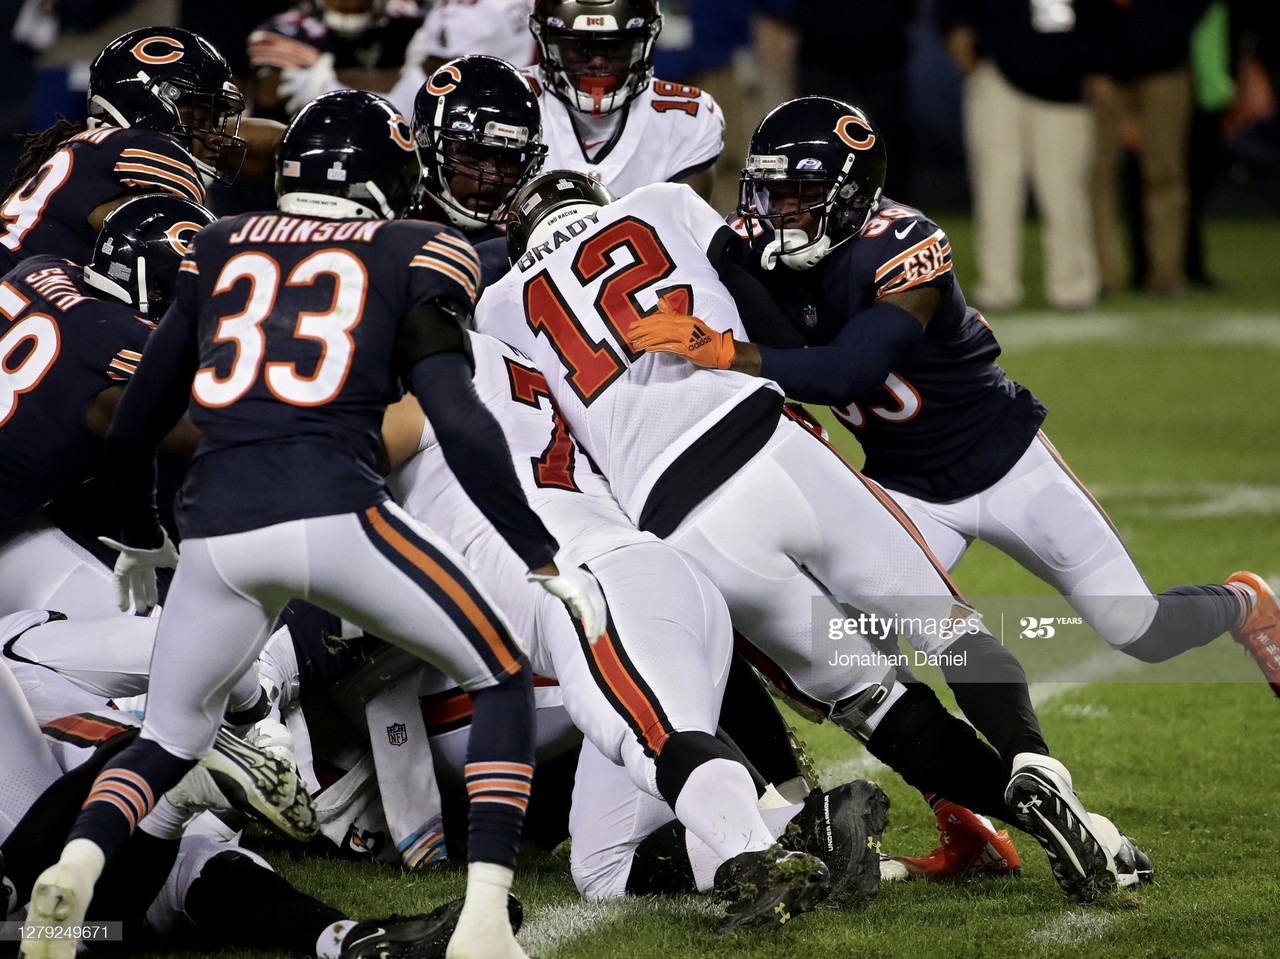 Tampa Bay Buccaneers 19-20 Chicago Bears: Nick Foles gets the better of Tom Brady